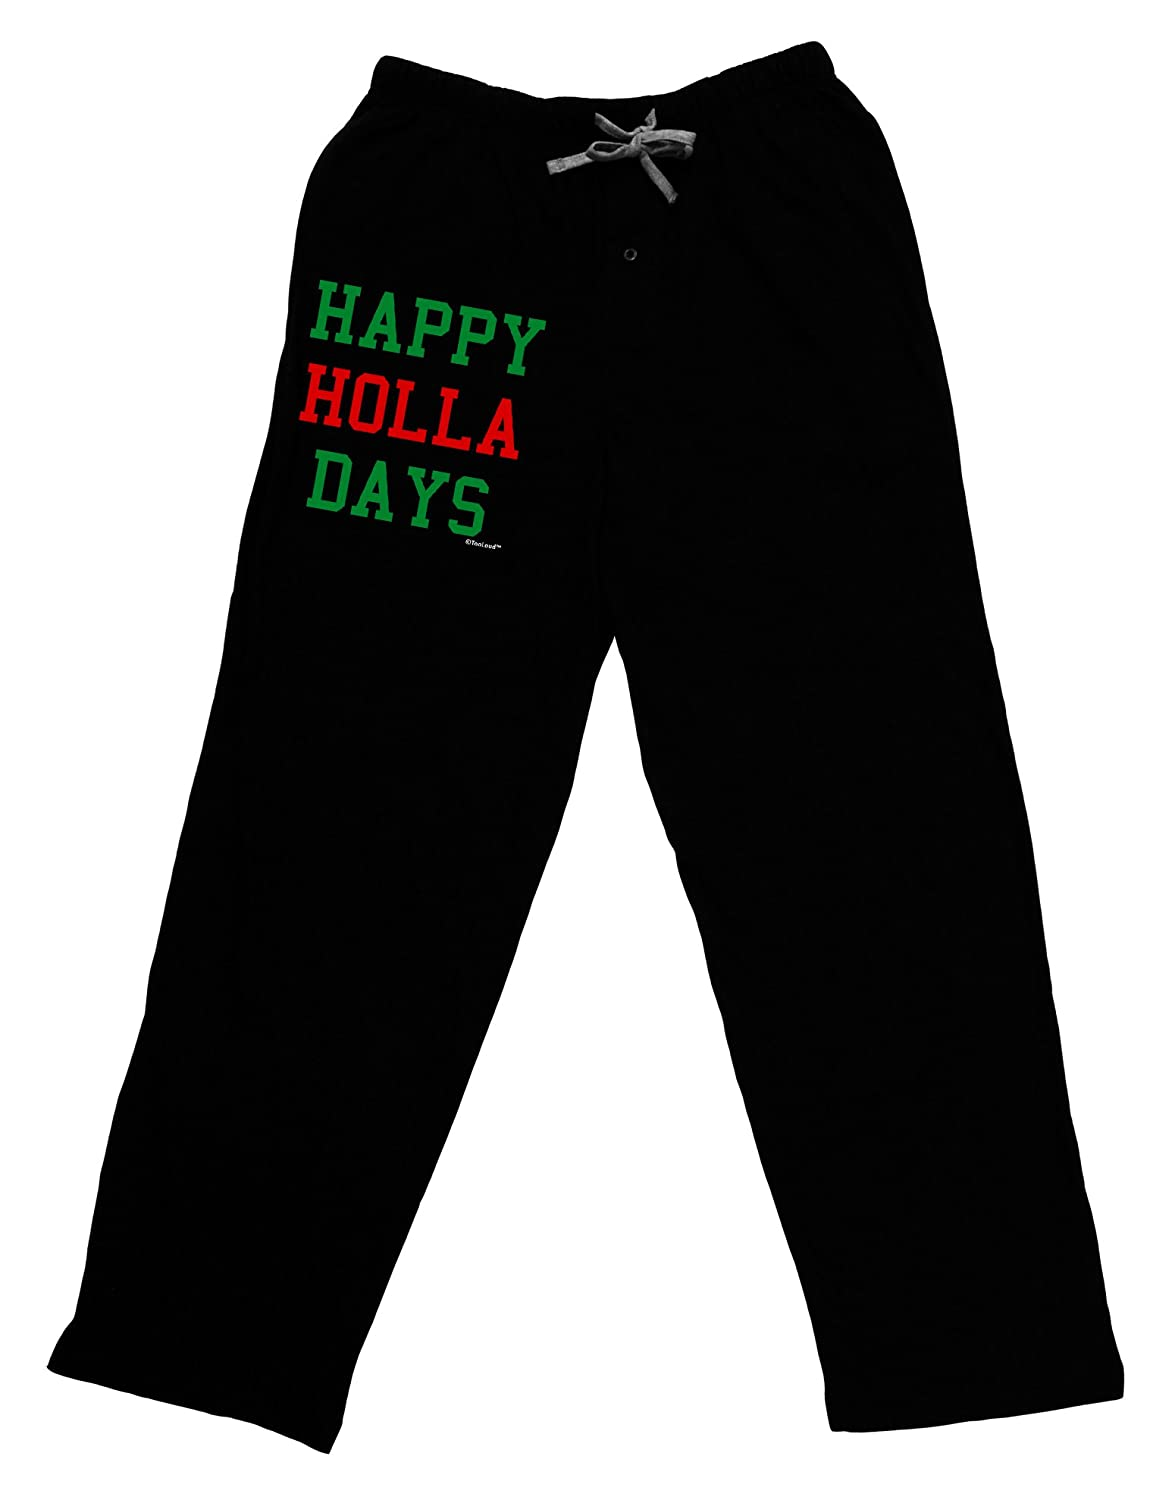 Black Red and Green Adult Lounge Pants TooLoud Happy Holla Days